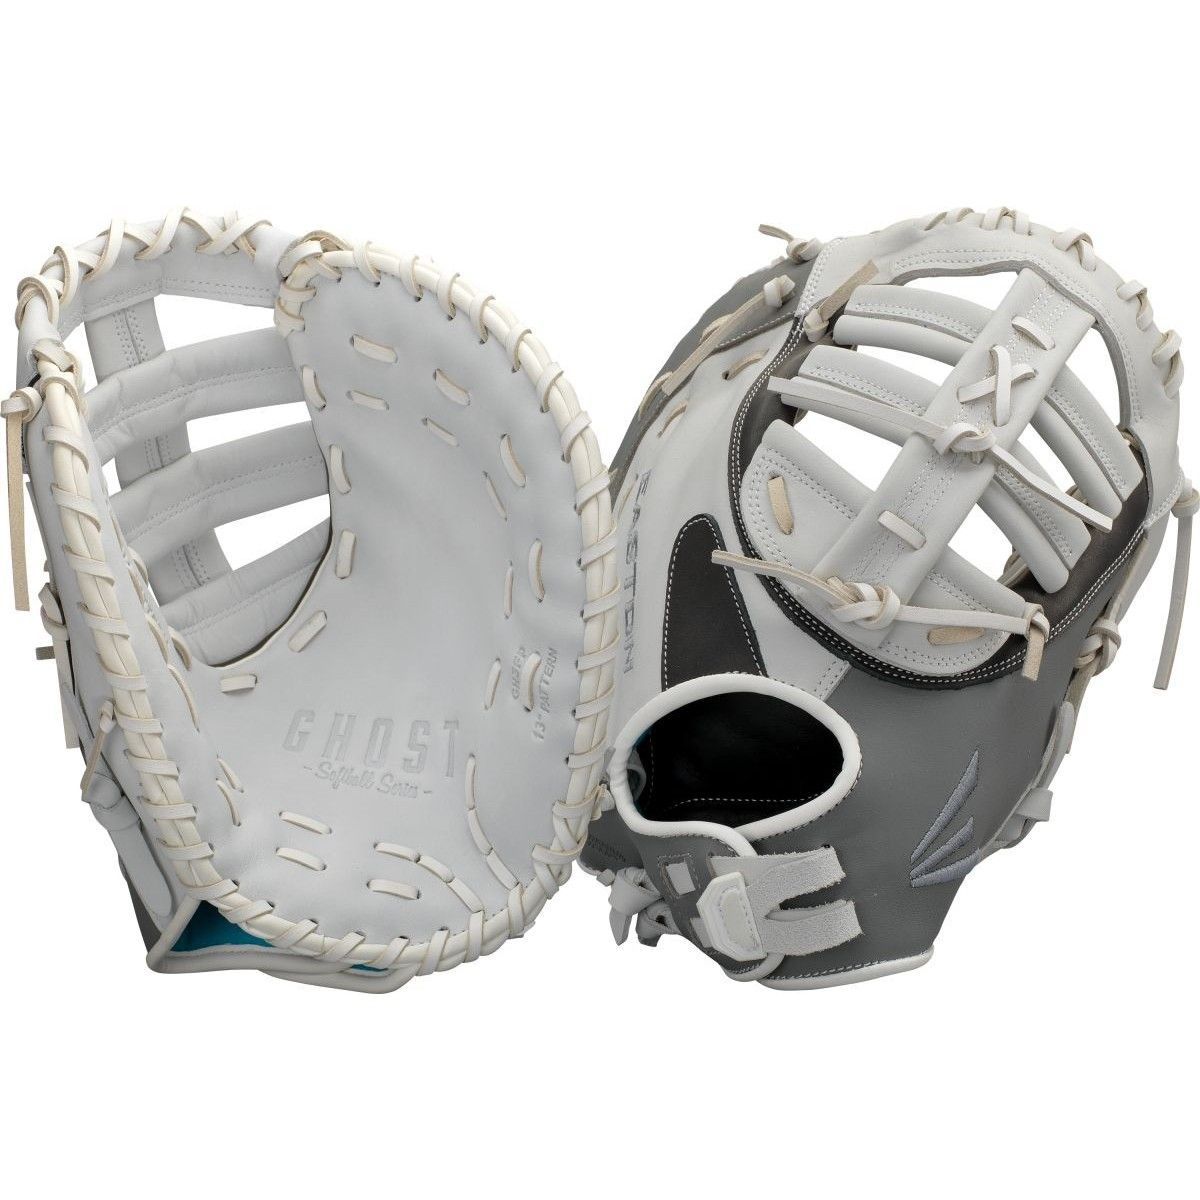 Easton Ghost Fastpitch Series 13